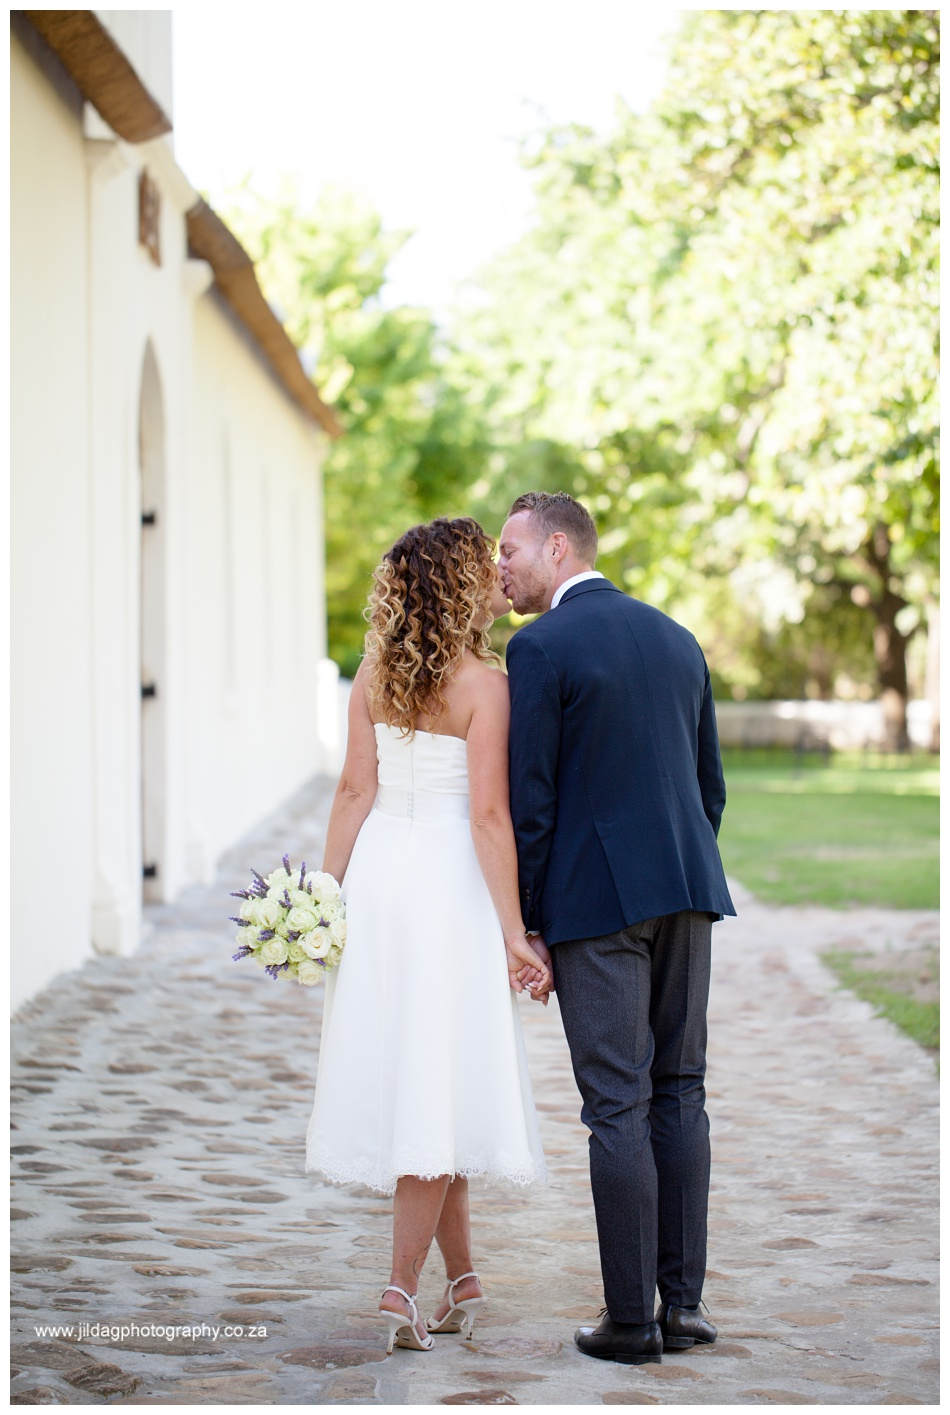 Jilda-G-Photography-wedding-Boschendal_0545